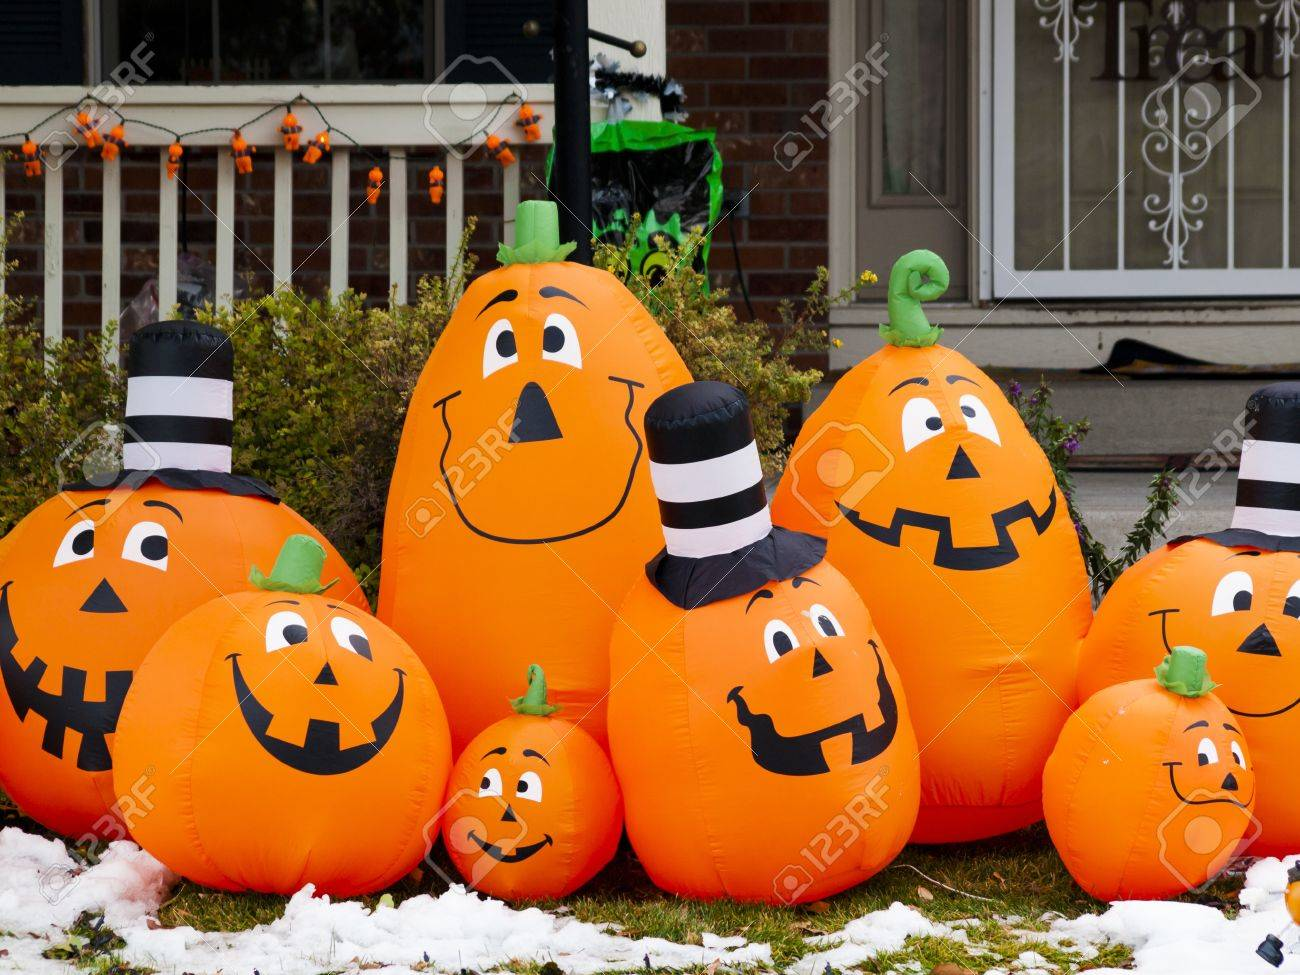 halloween decorations in the front yard of a house on halloween stock photo 15982376 - Halloween Inflatable Yard Decorations